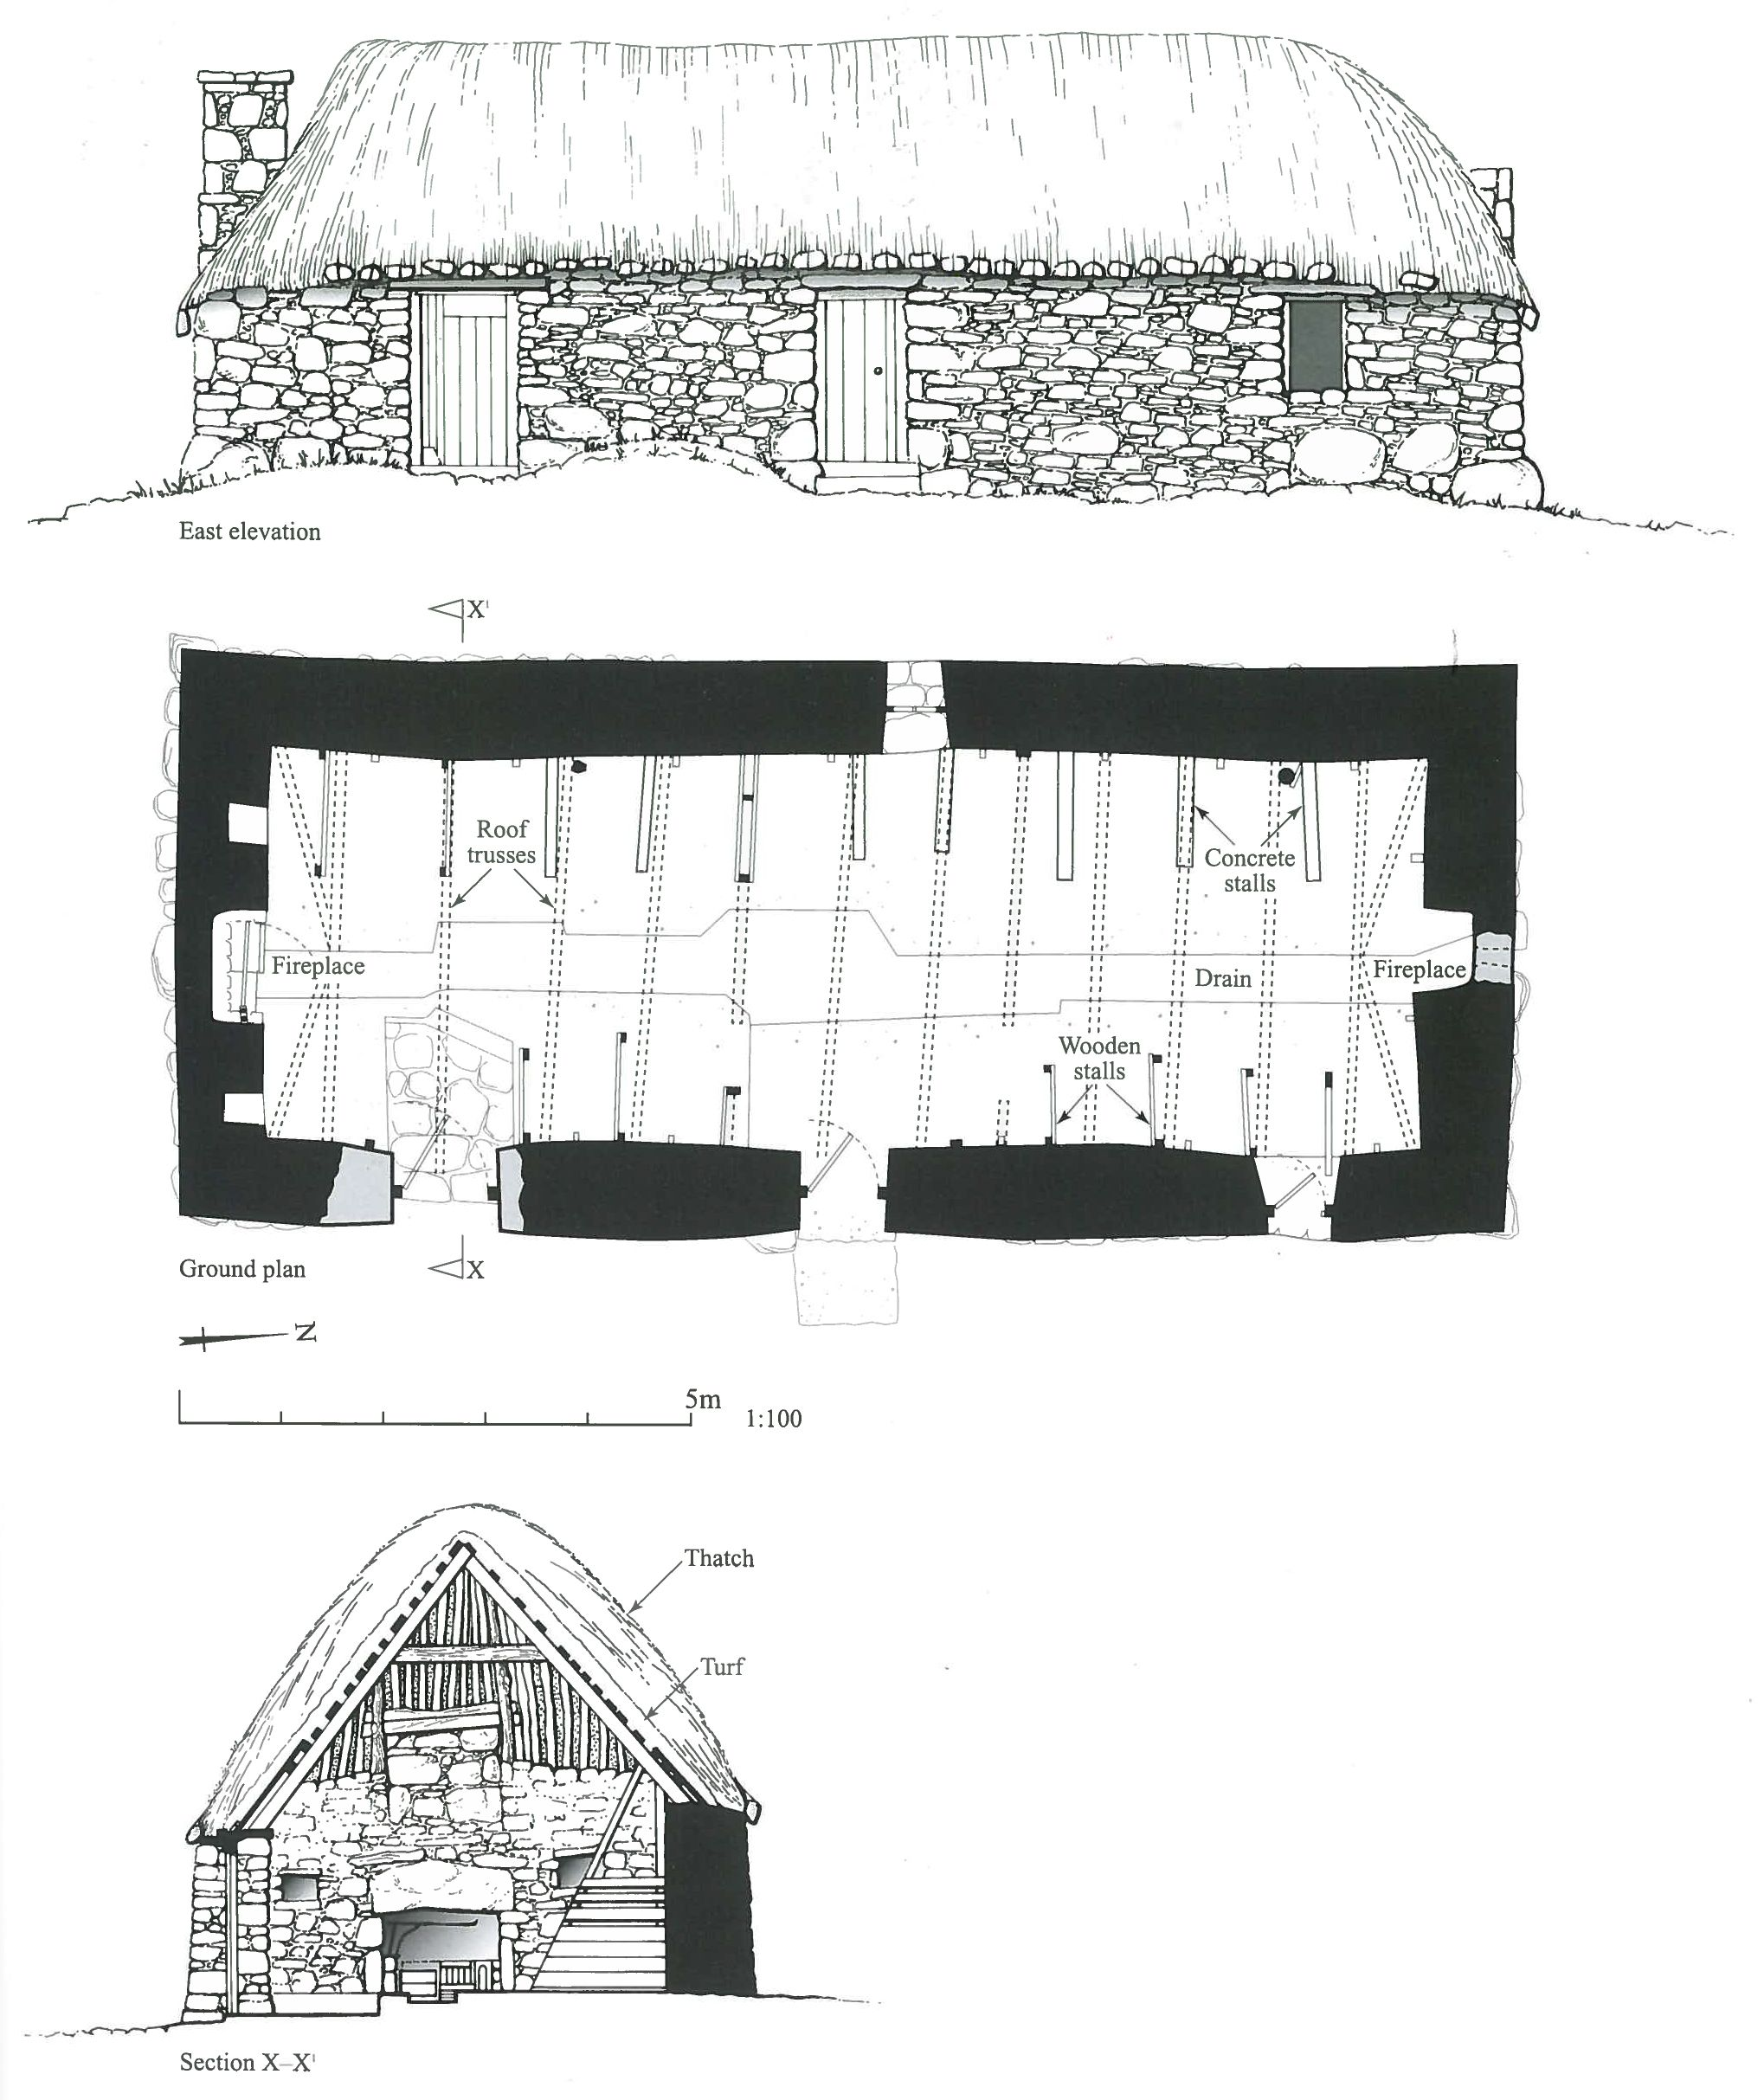 Croft House Situated At Glamsdale Scotland Was The Primary Croft House Of The Cluster Adjoining The Stack Yard Trad Grey Tones Traditional Style How To Plan